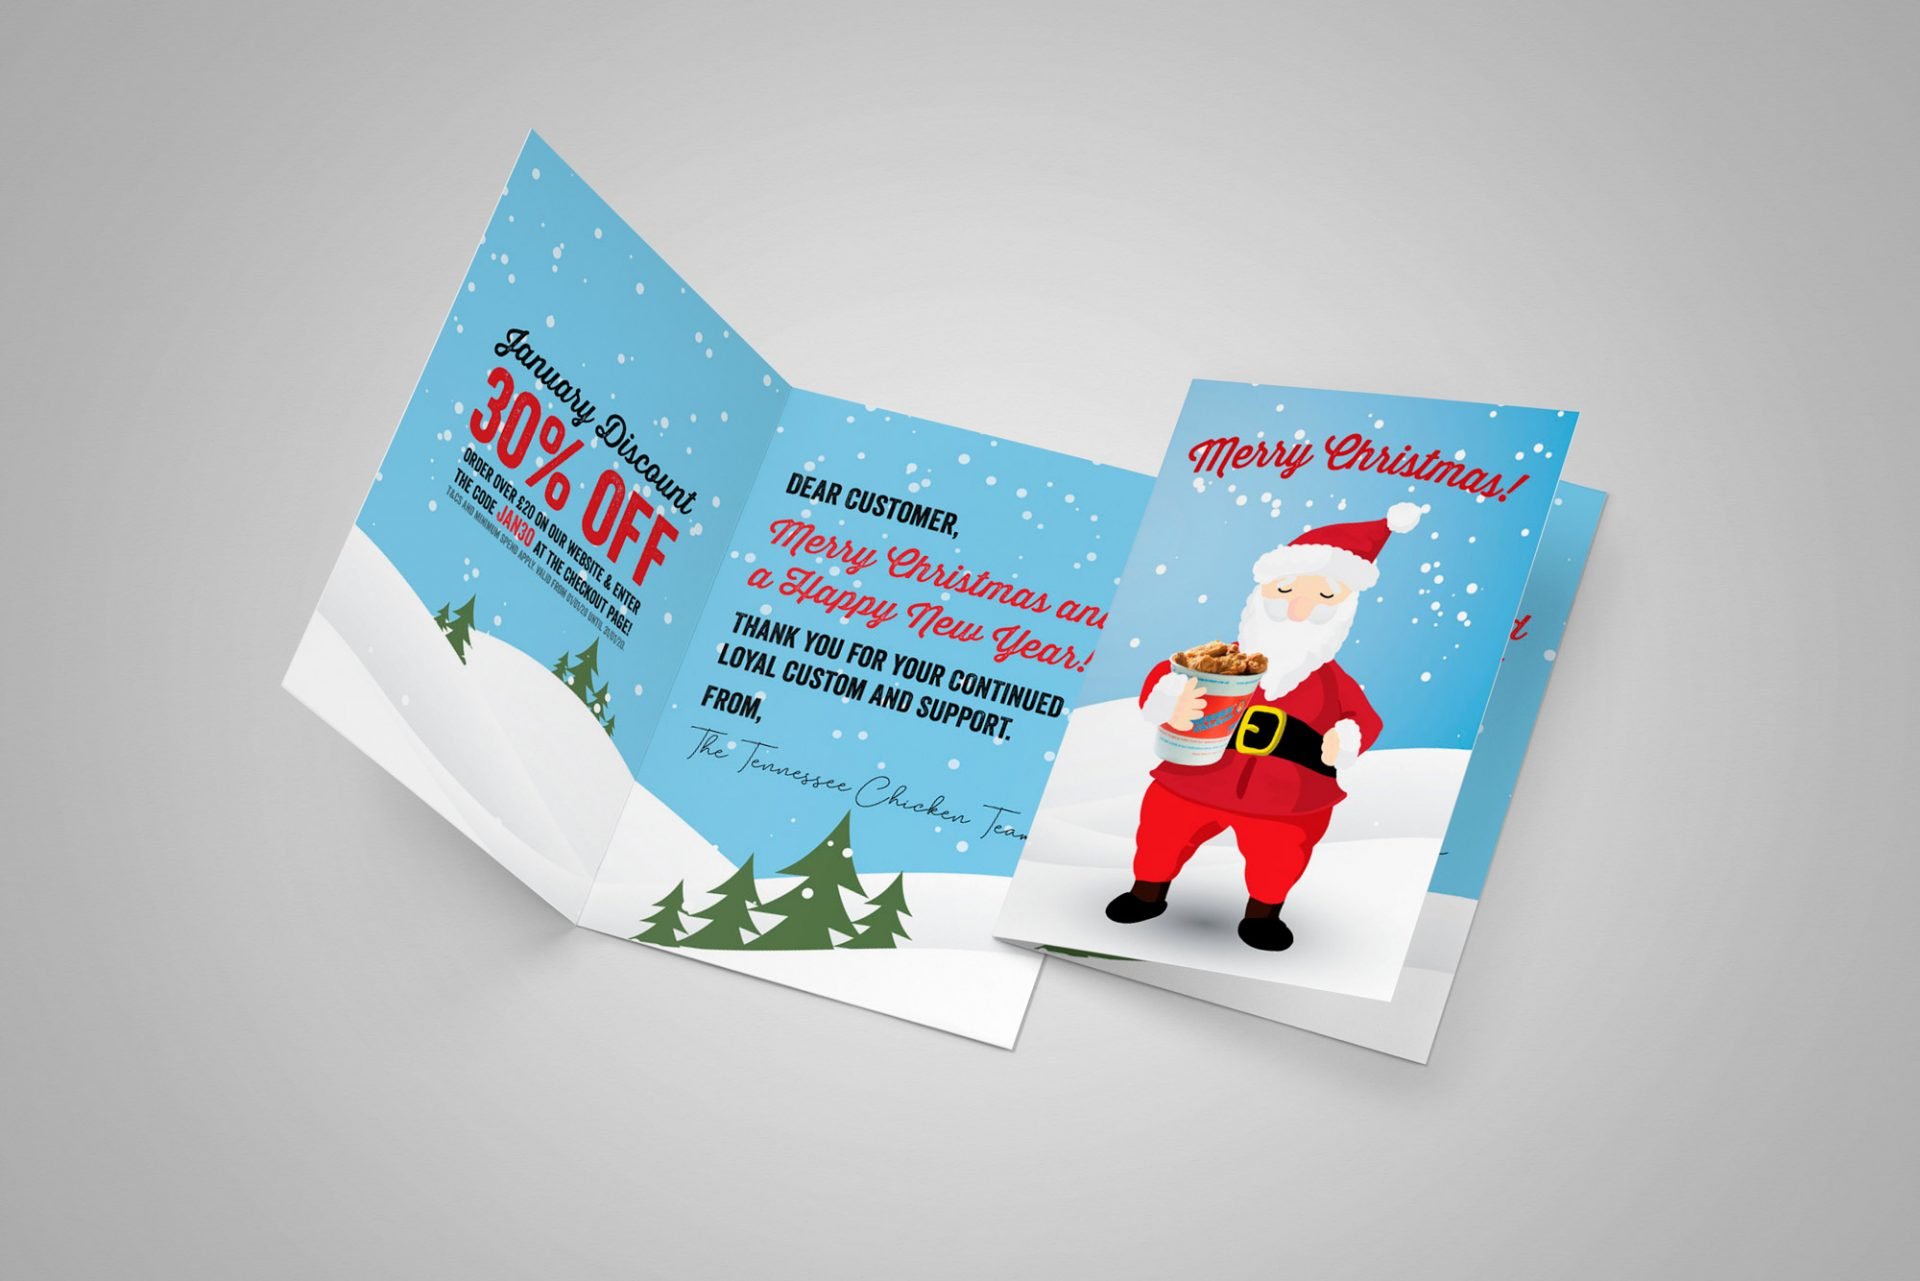 Branded Christmas Cards